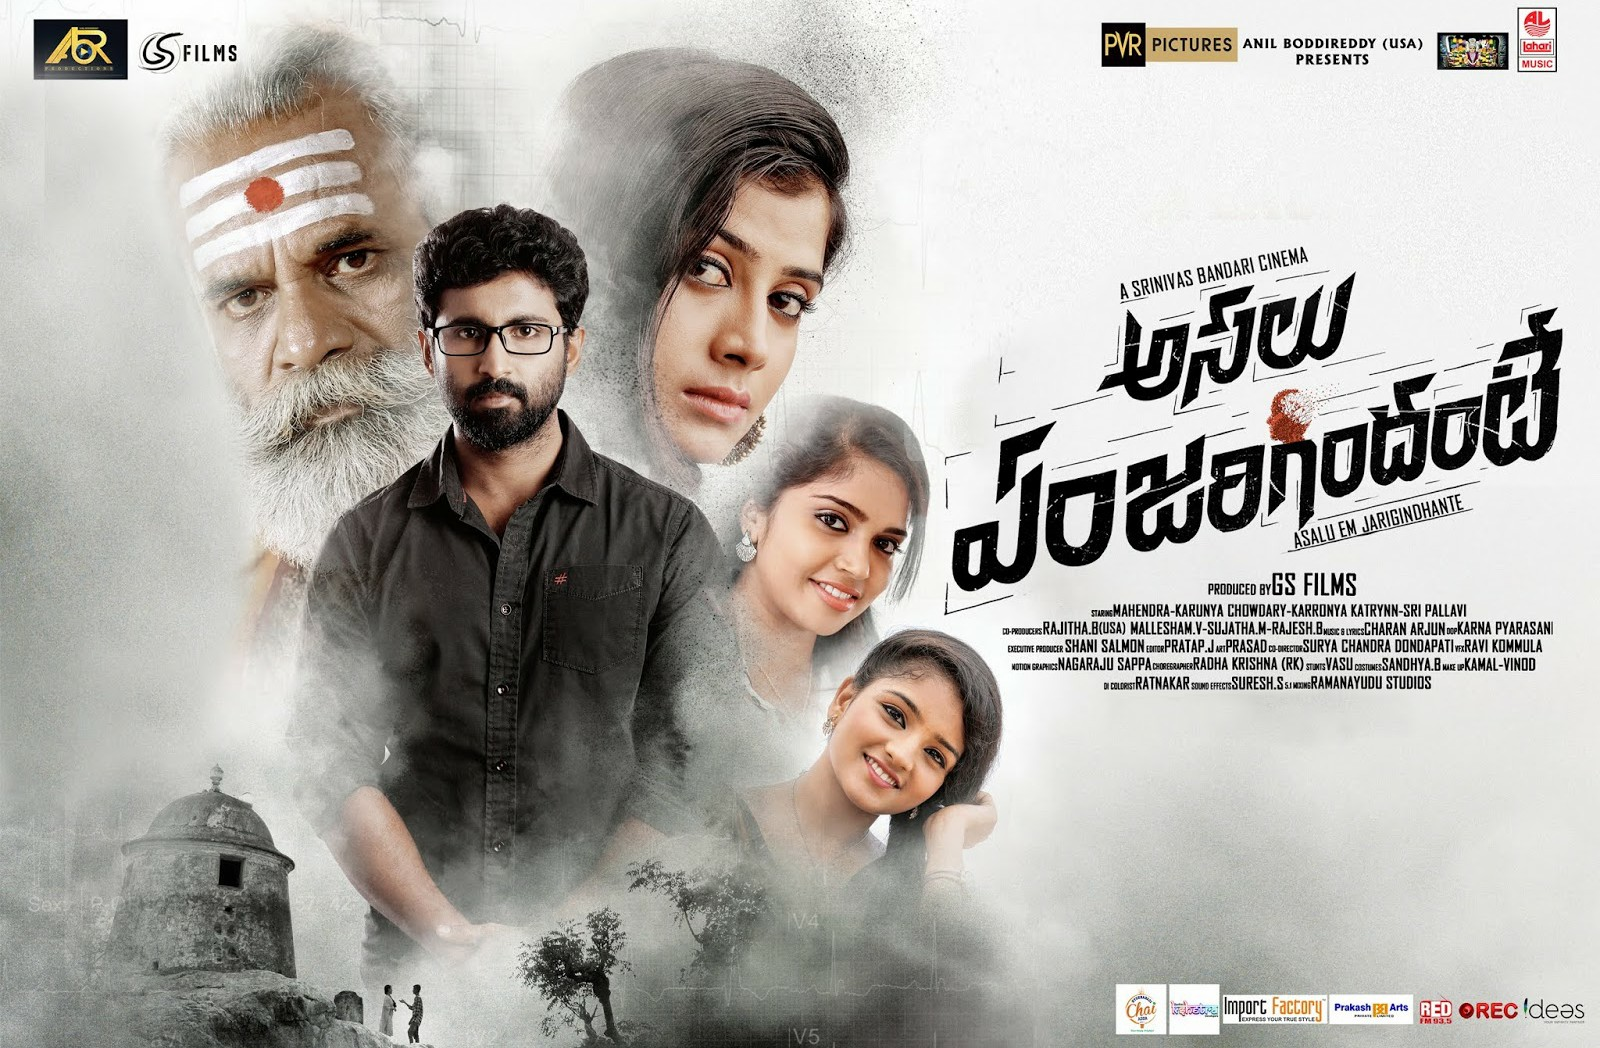 Asalu Em Jarigindhante 2020 Telugu 720p HDRip 1.1GB Download